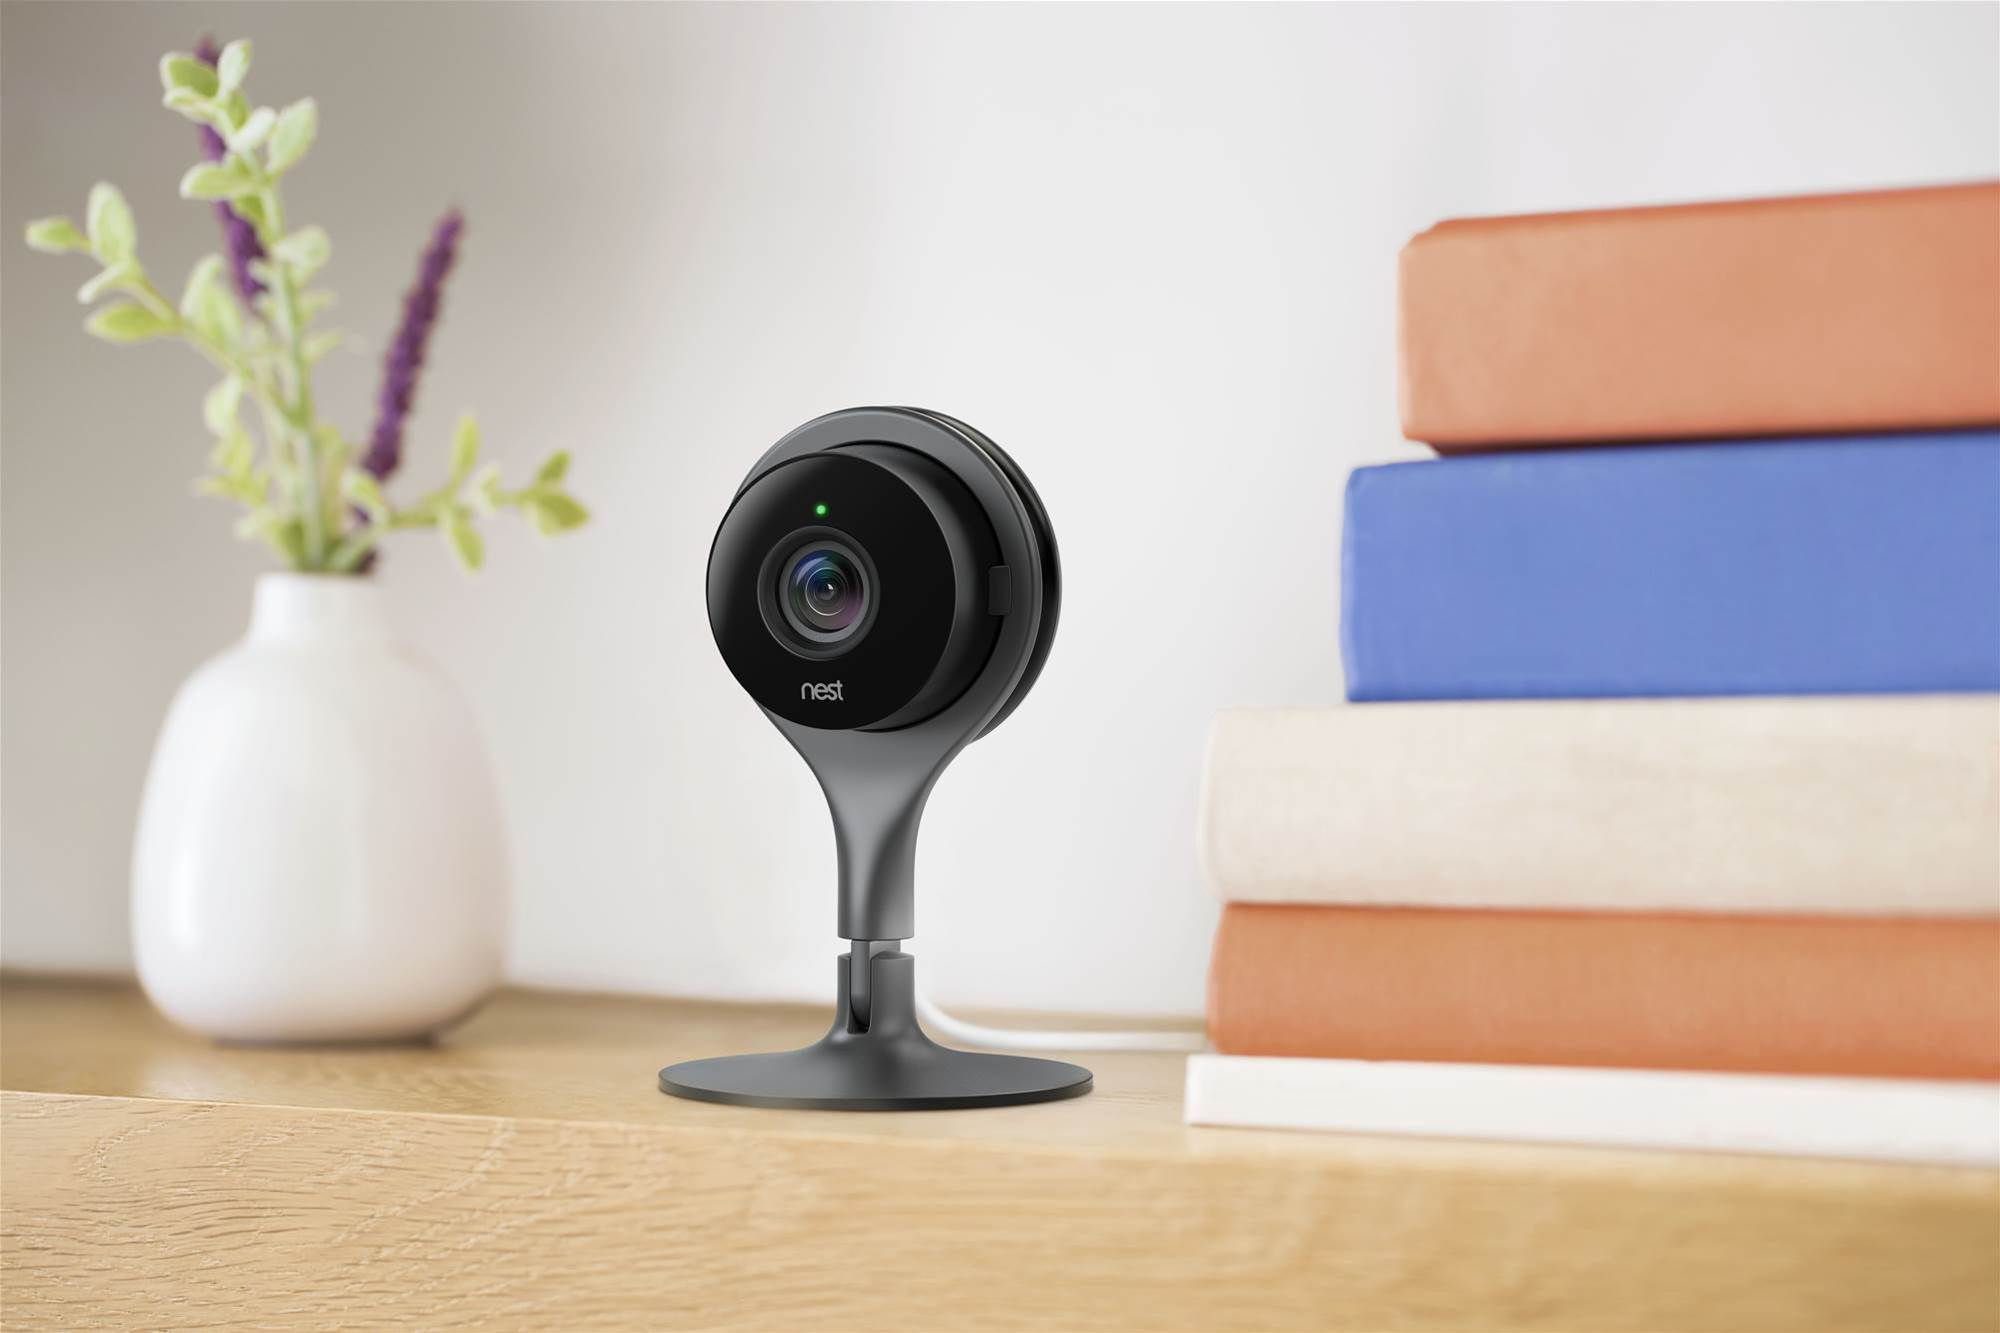 Nest's Australian smart home products unveiled